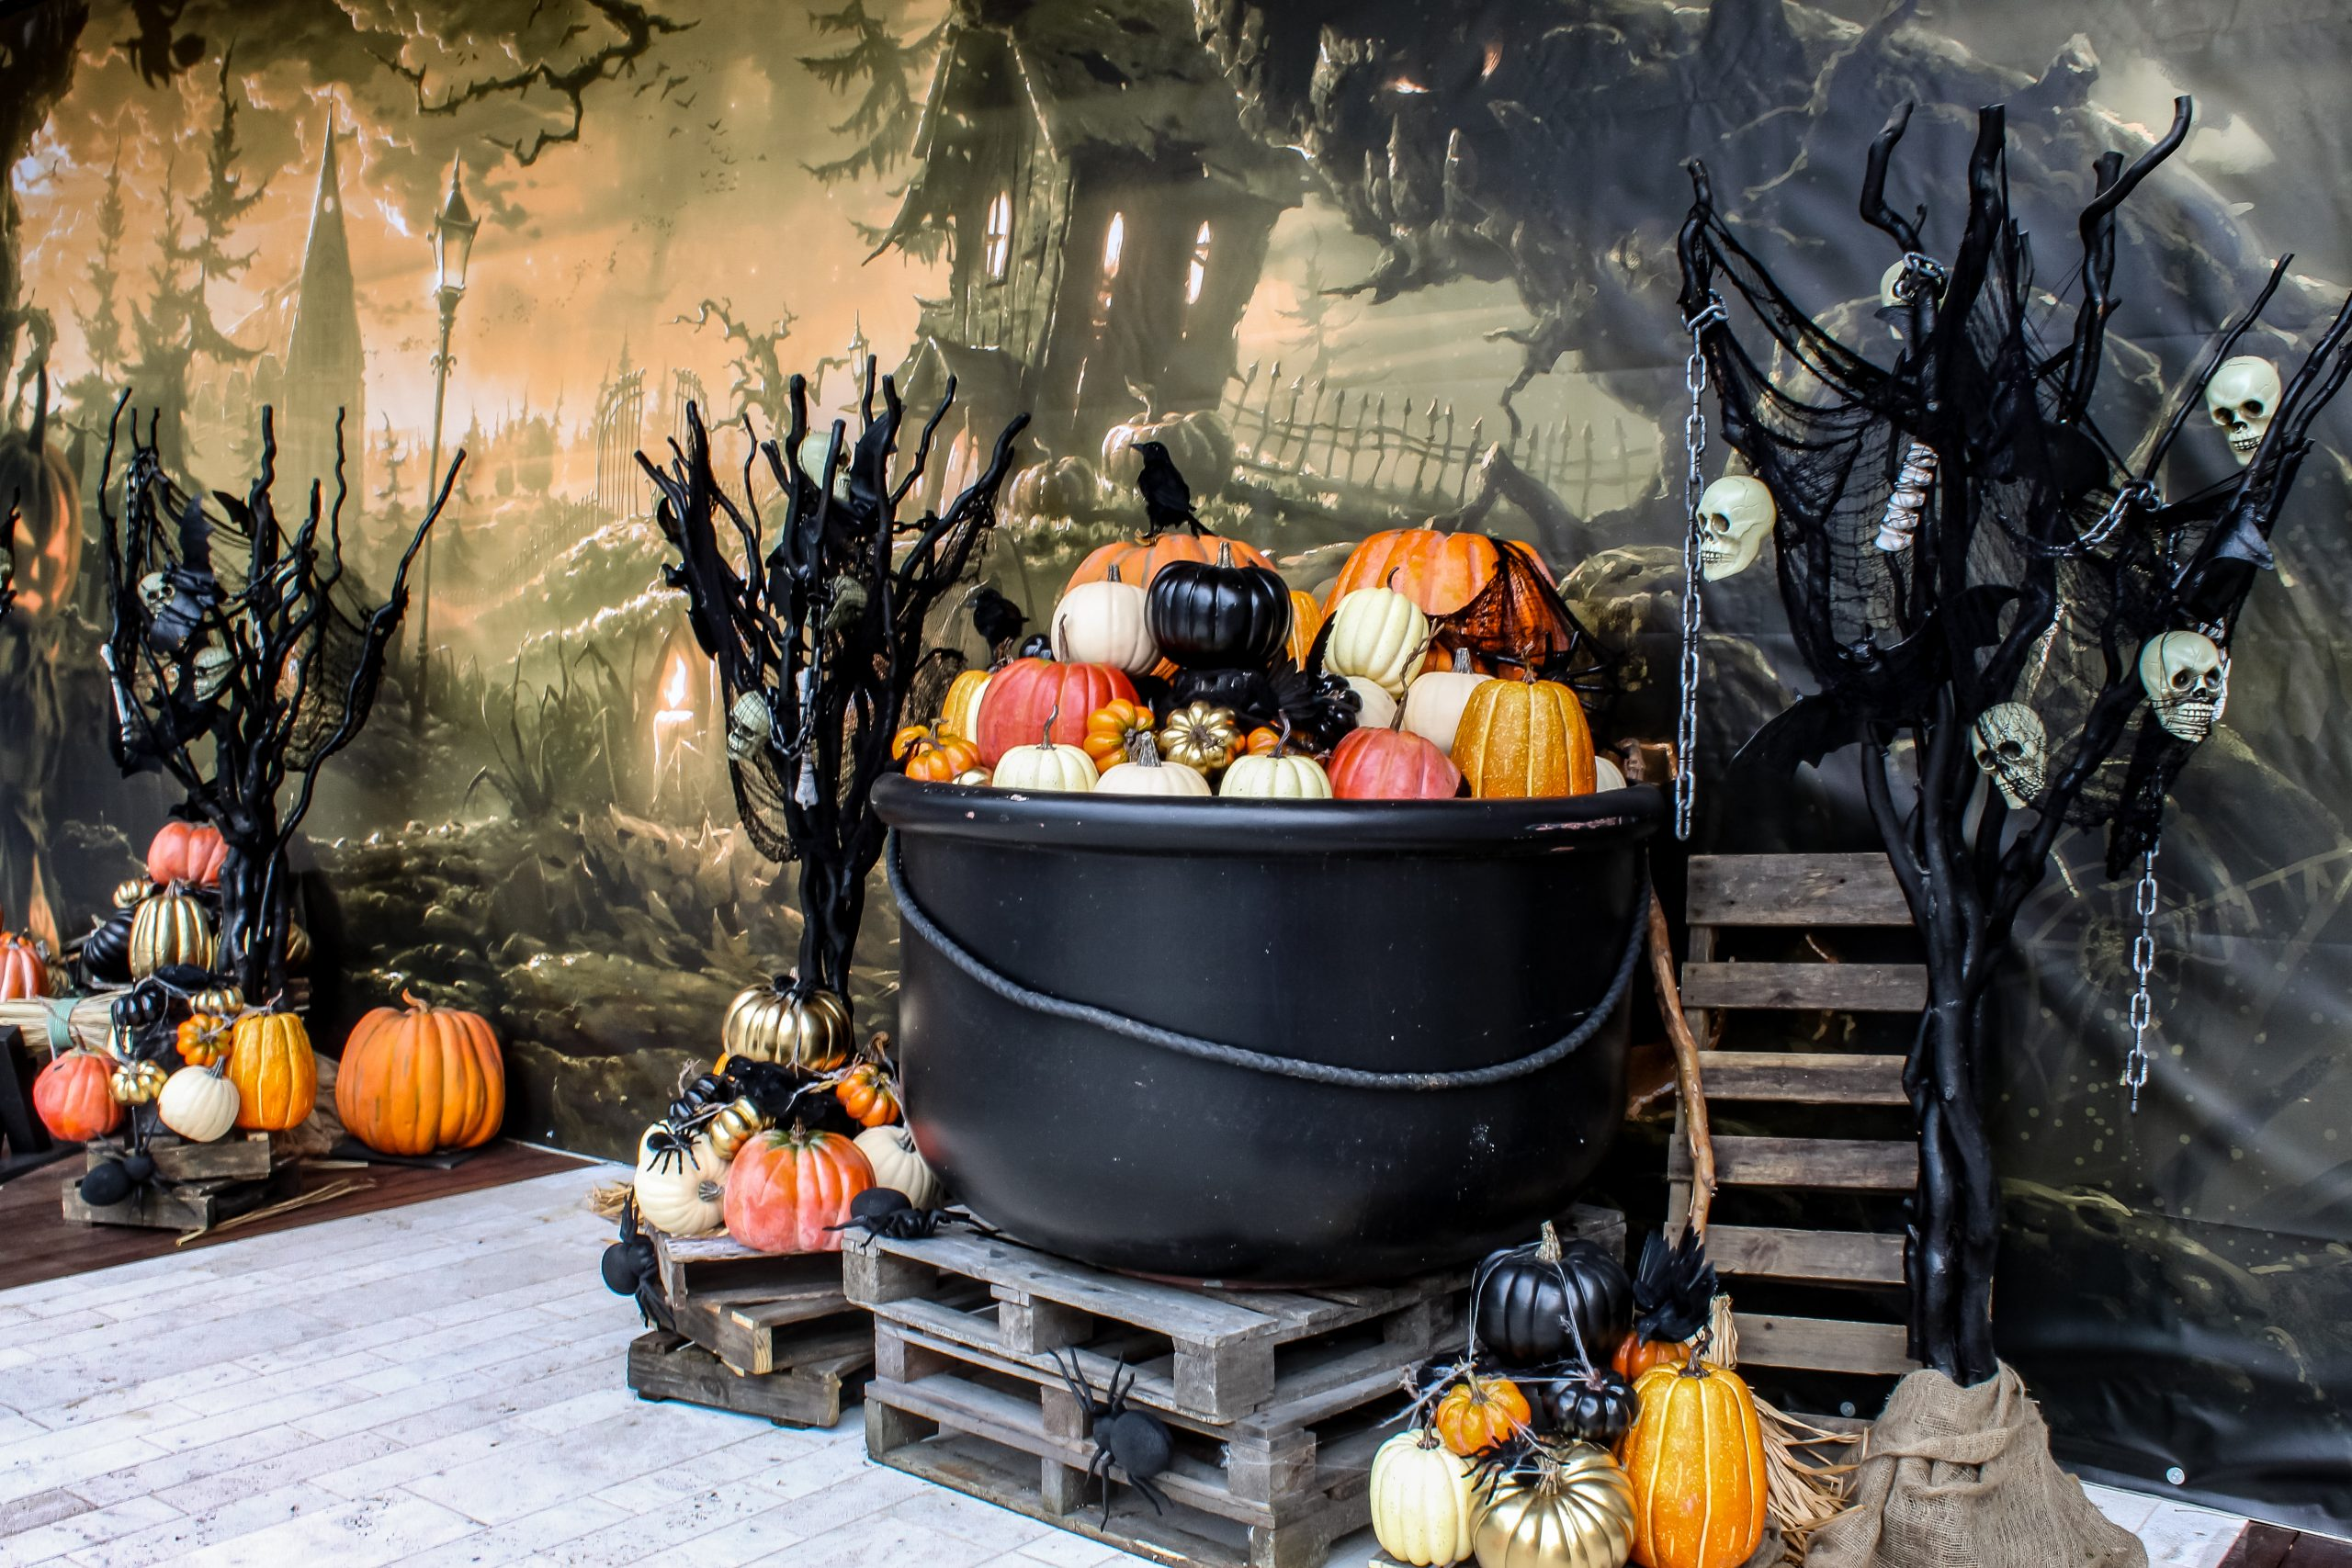 Spooky Halloween oversized cauldron with pumpkins, pallet decor and spooky trees. Spooky forest backdrop.